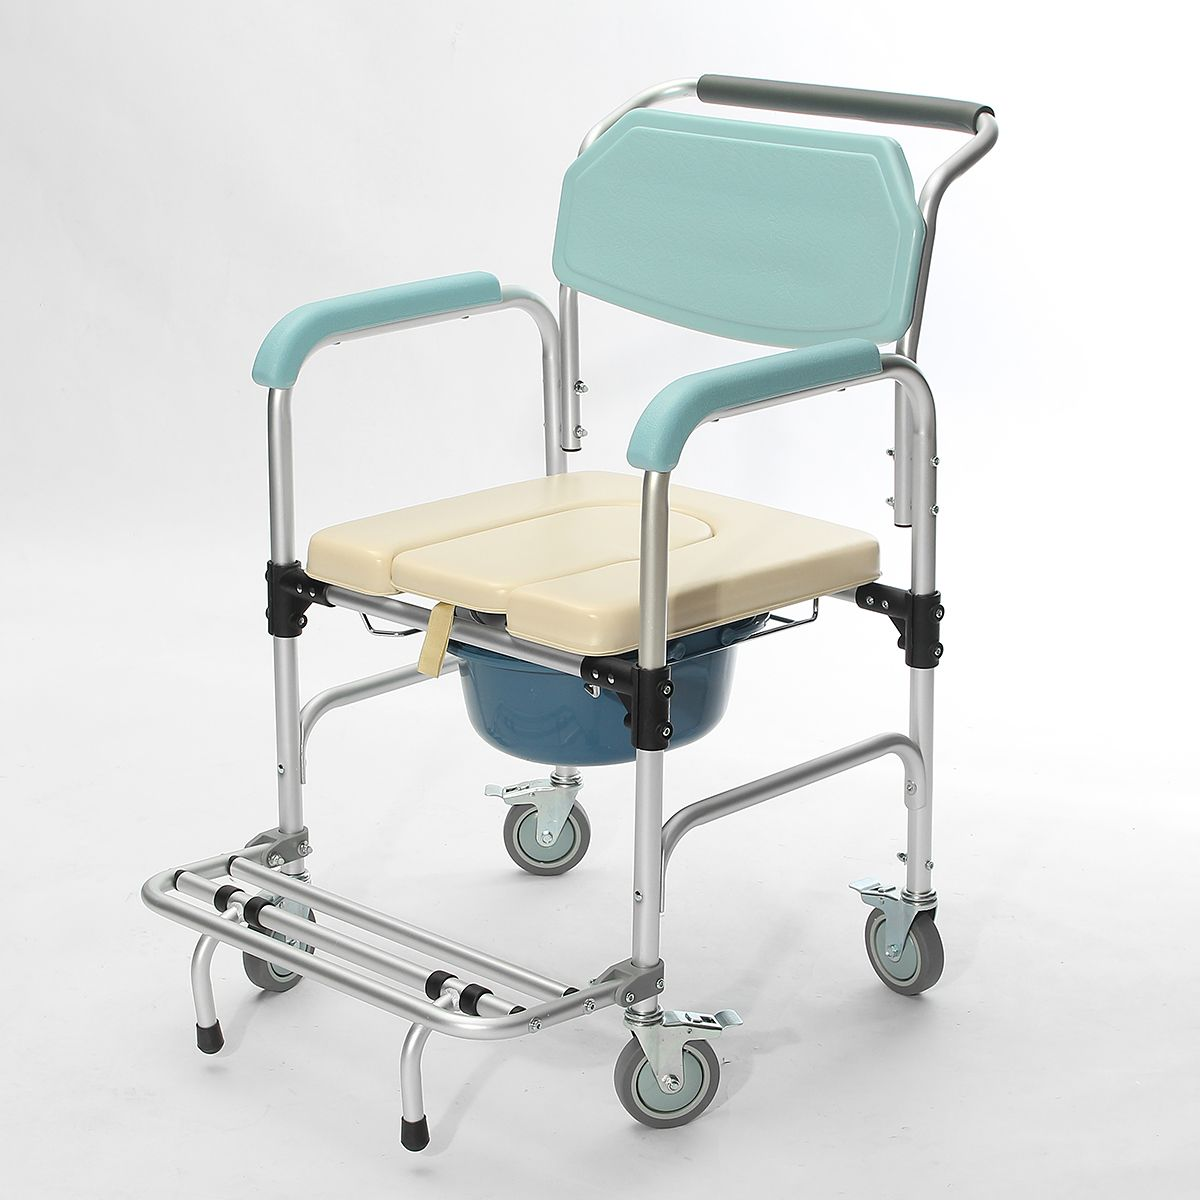 3 In 1 Commode Wheelchair Bedside Toilet Shower Seat Bathroom Rolling Chair Elder Folding Chair Shower Seat Rolling Chair Chair